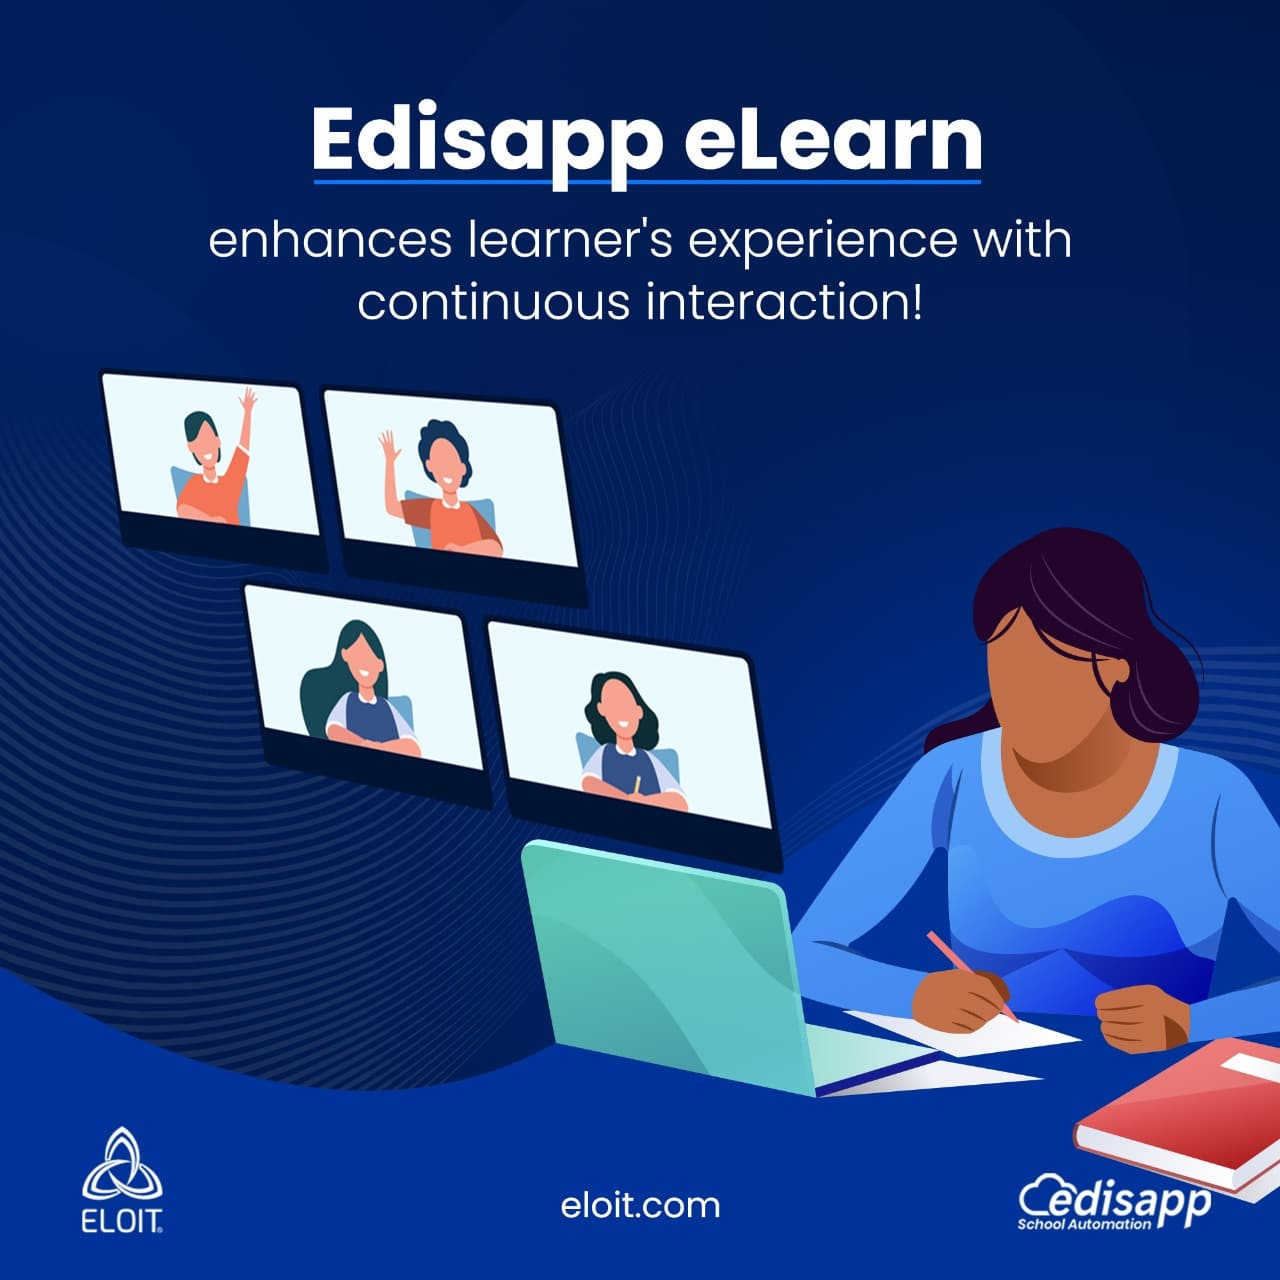 Edisapp eLearn Learning Management System – Enhances learner's experience with continuous interactions!